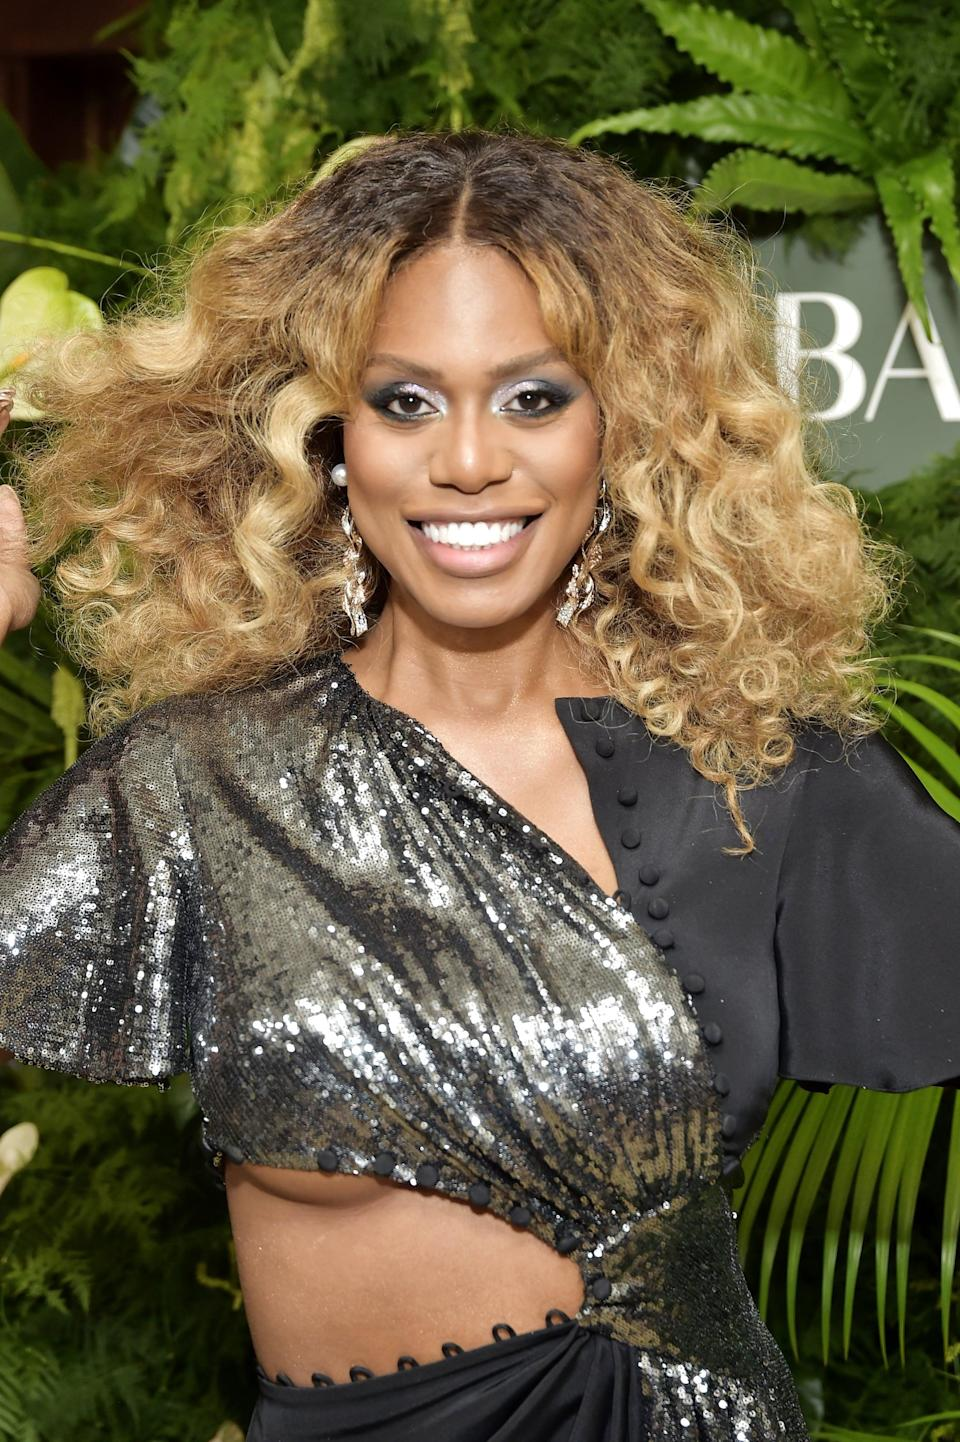 WEST HOLLYWOOD, CALIFORNIA - OCTOBER 29: Laverne Cox attends Prabal Gurung Celebrates 10 Years & Book Launch at Sunset Tower Hotel on October 29, 2019 in West Hollywood, California. (Photo by Stefanie Keenan/Getty Images for Prabal Gurung)